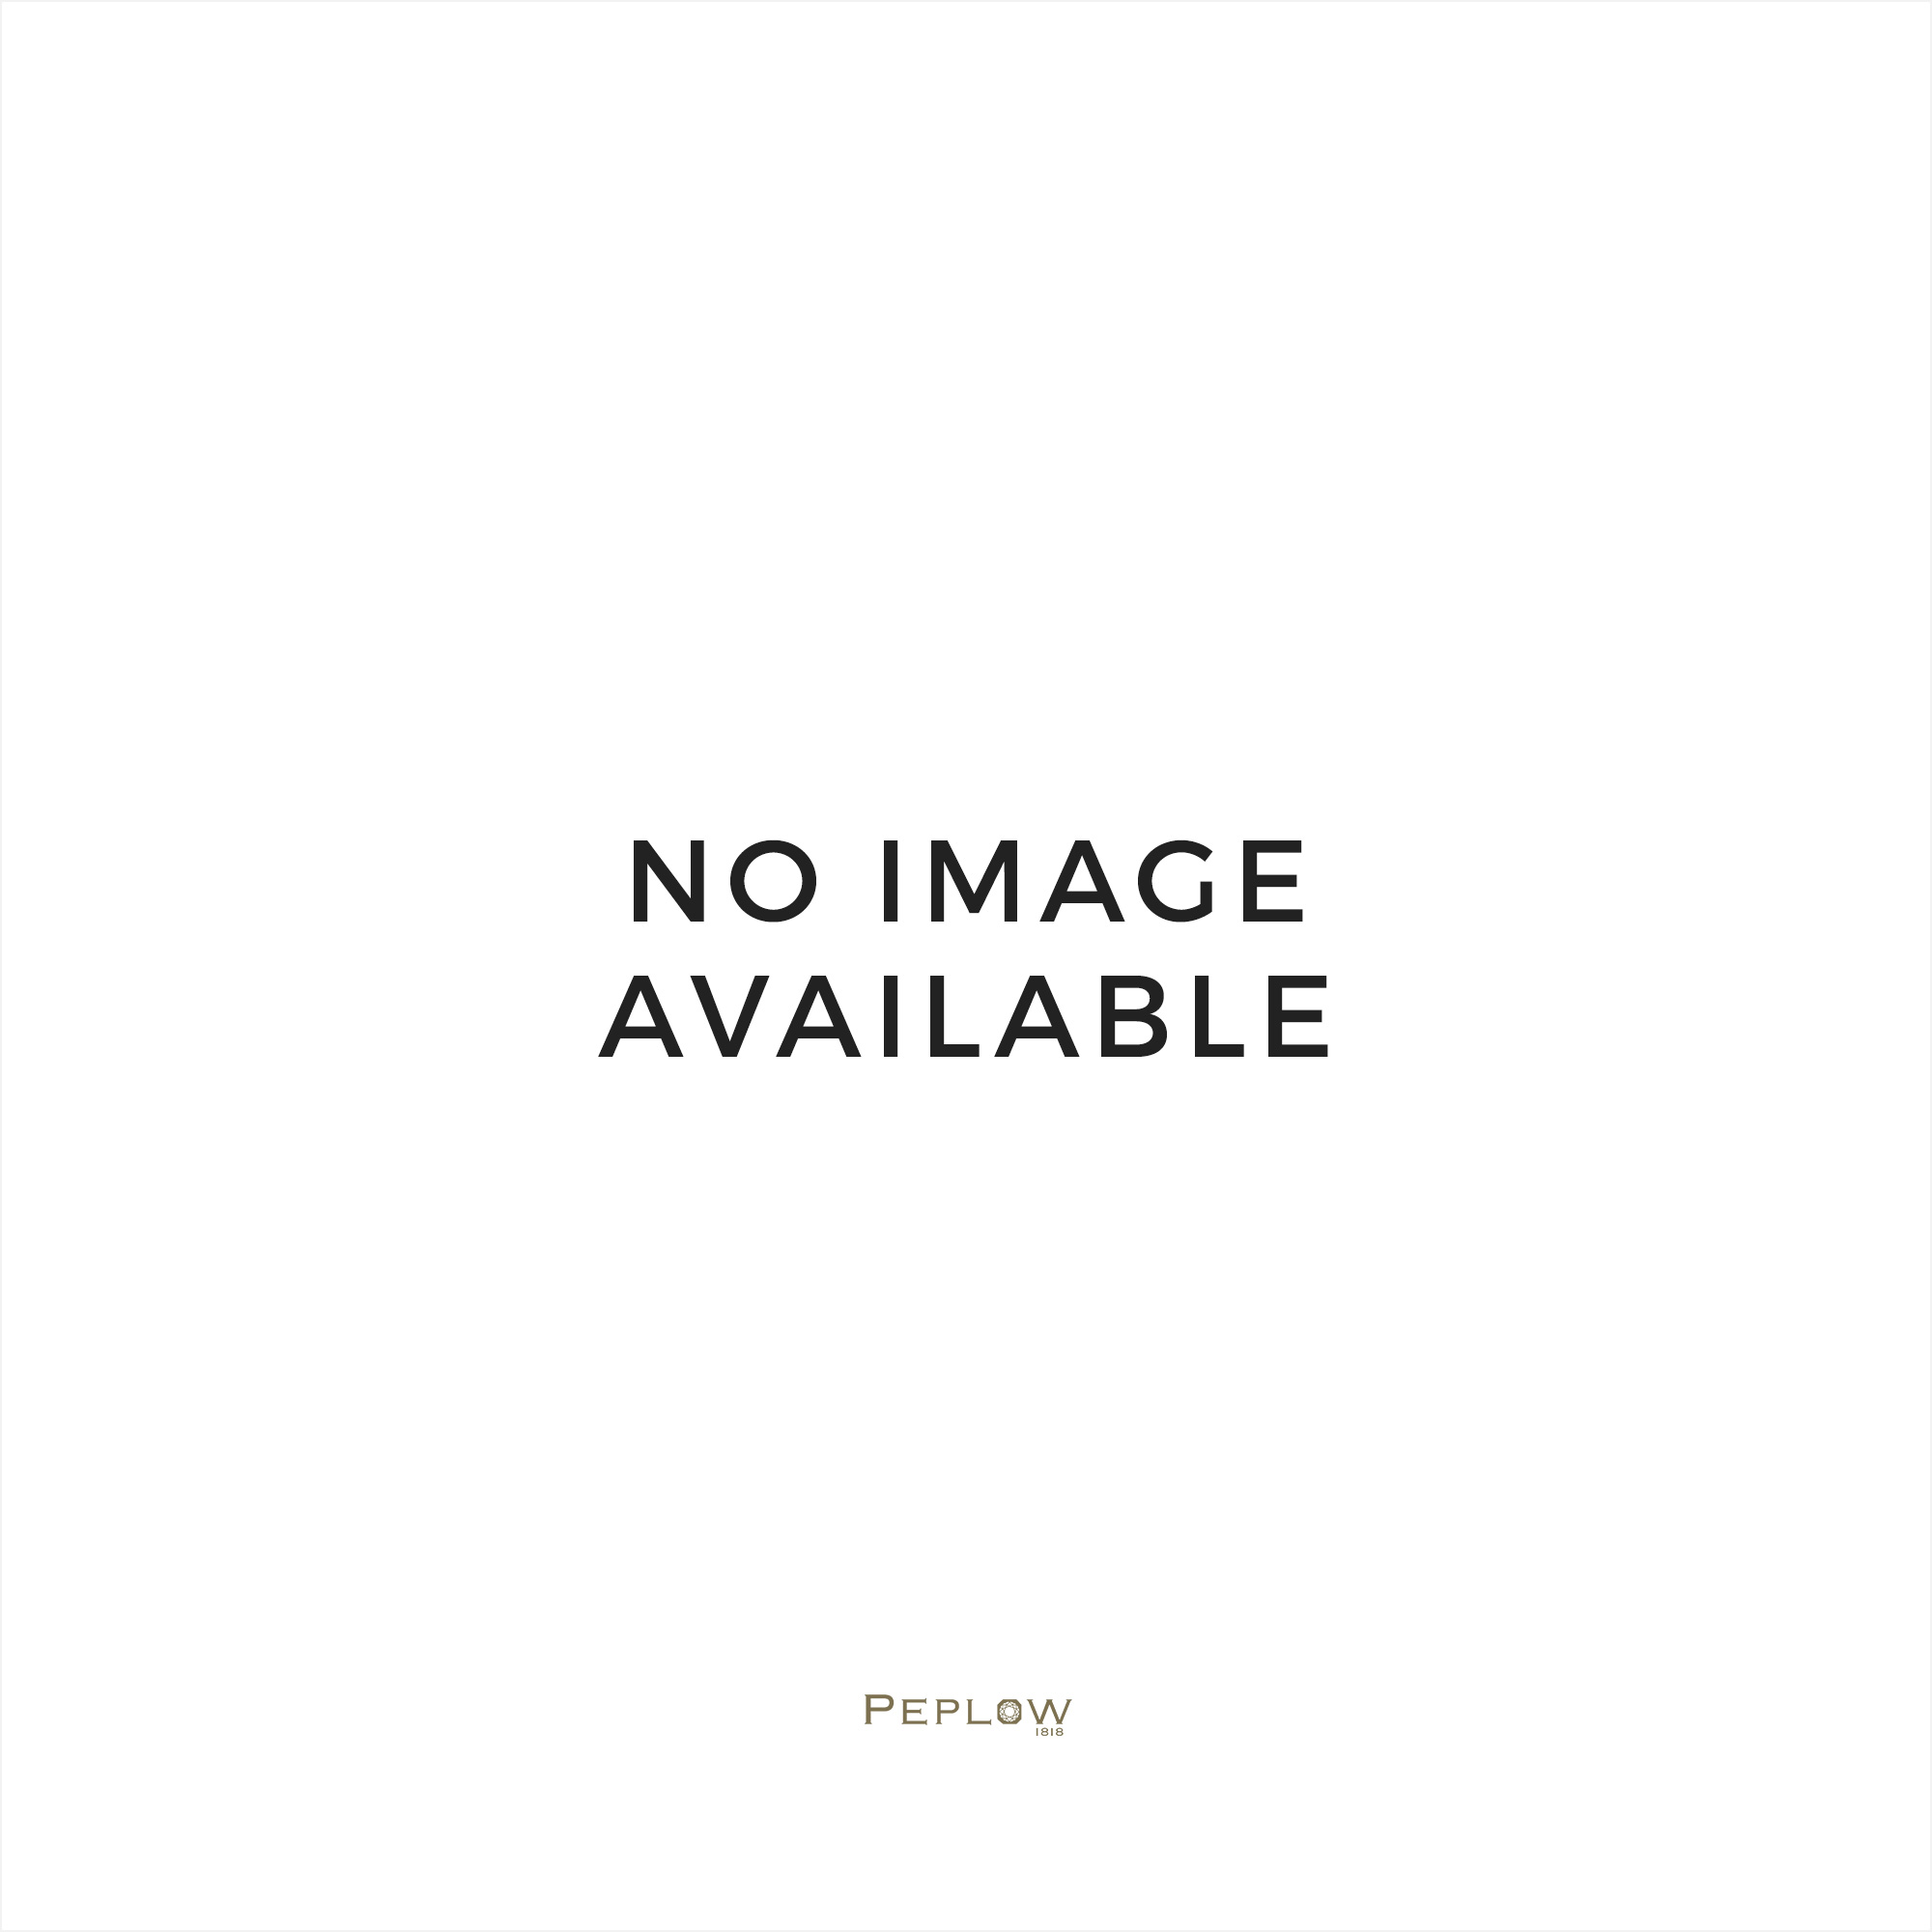 Citizen Watches Ladies Gold PVD Cubic Zirconia Bezel Eco-Drive Watch